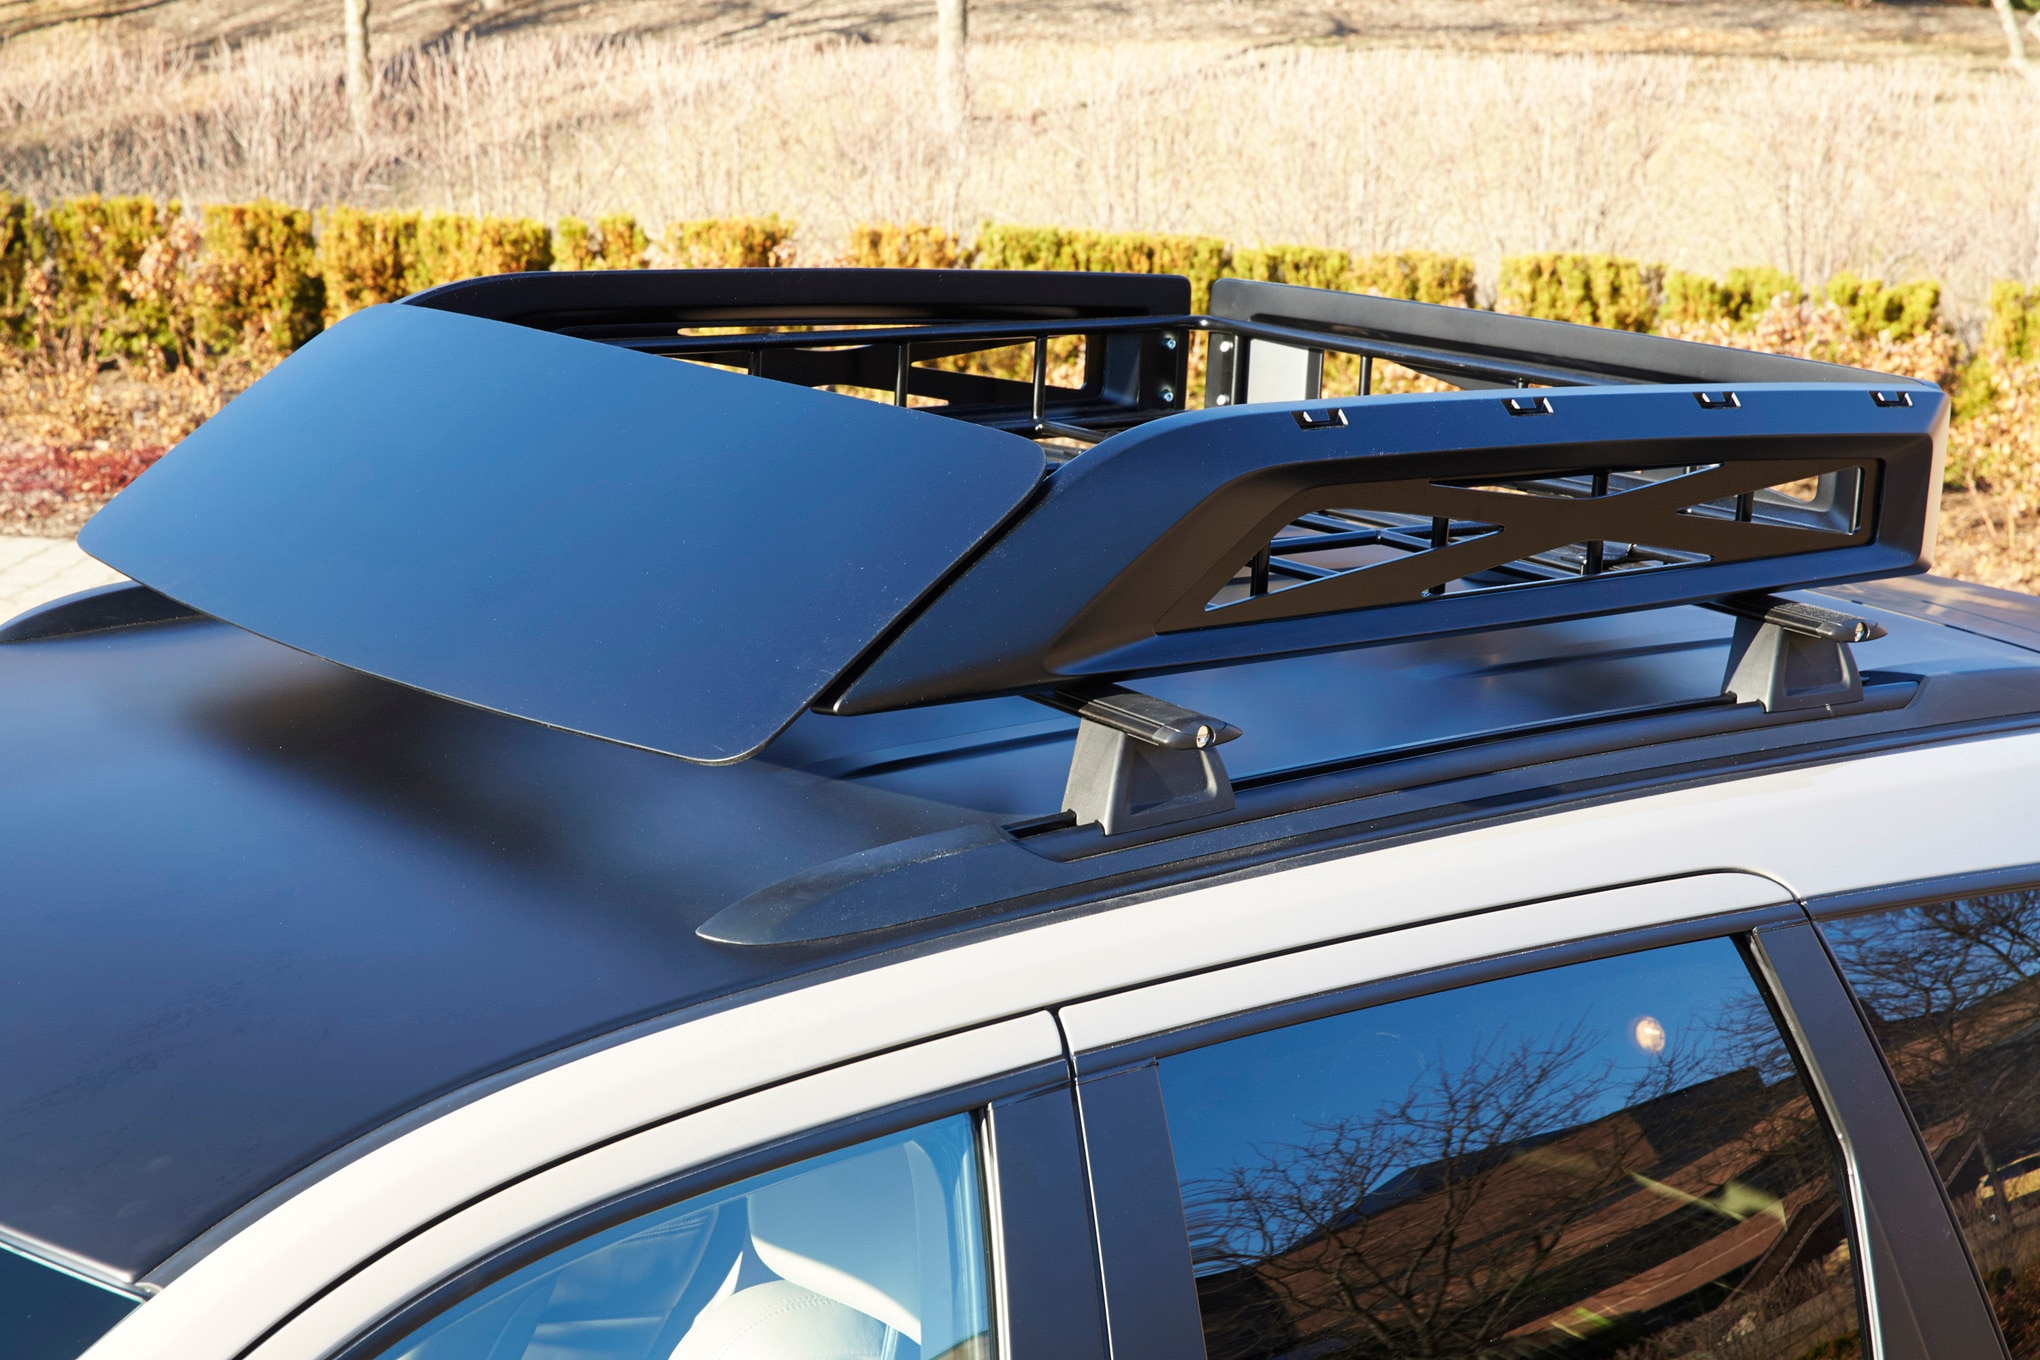 Jeep Grand Cherokee EcoDiesel Trail Warrior Concept roof rack